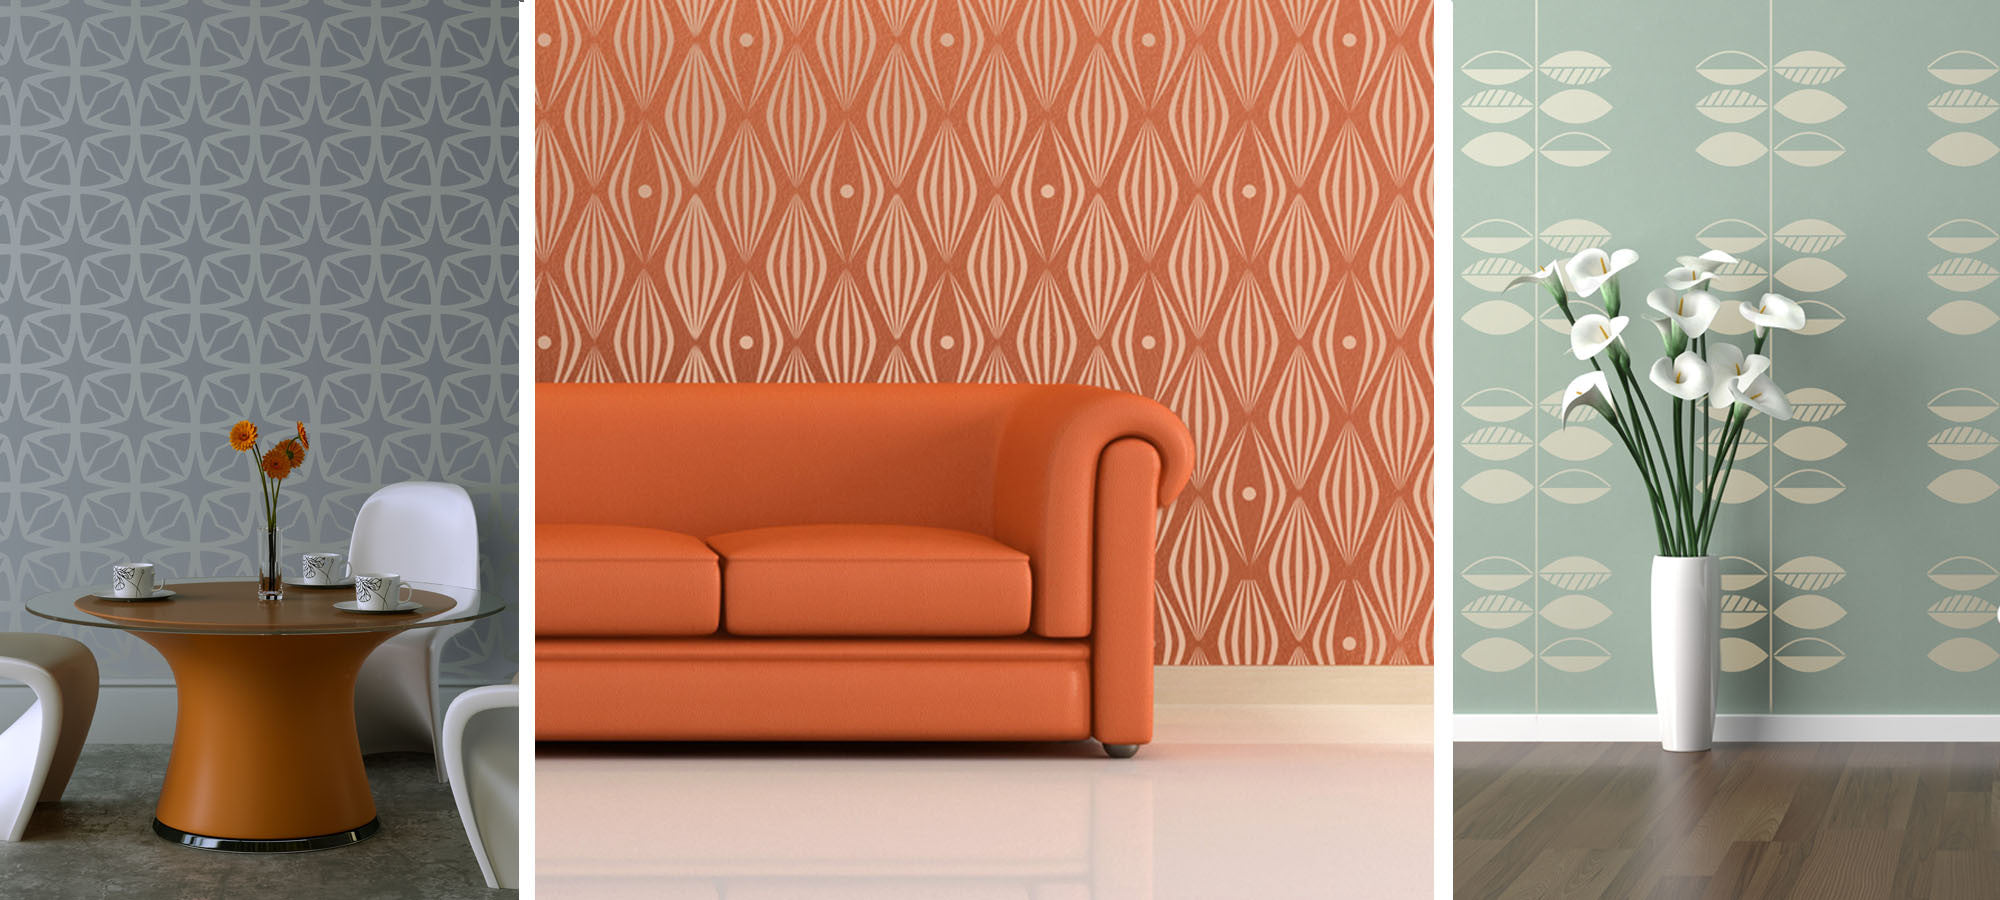 Stencil up decorative wall stencils amipublicfo Image collections